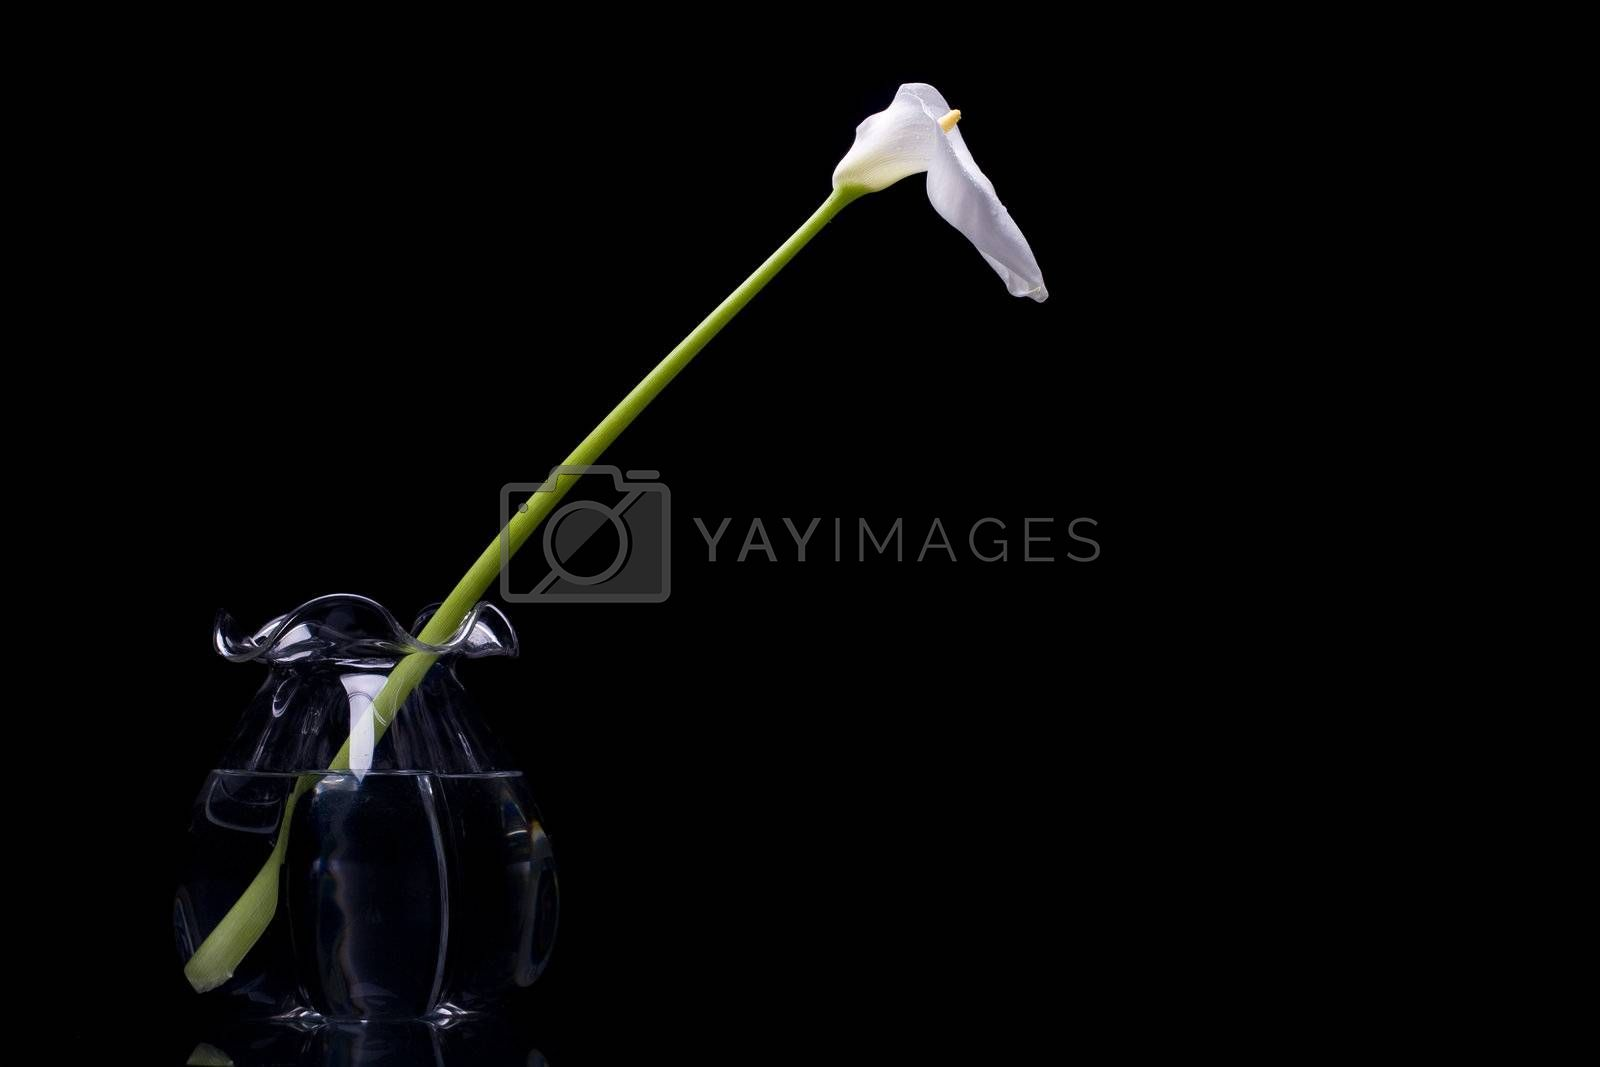 Royalty free image of White Calla Lilly by ajn